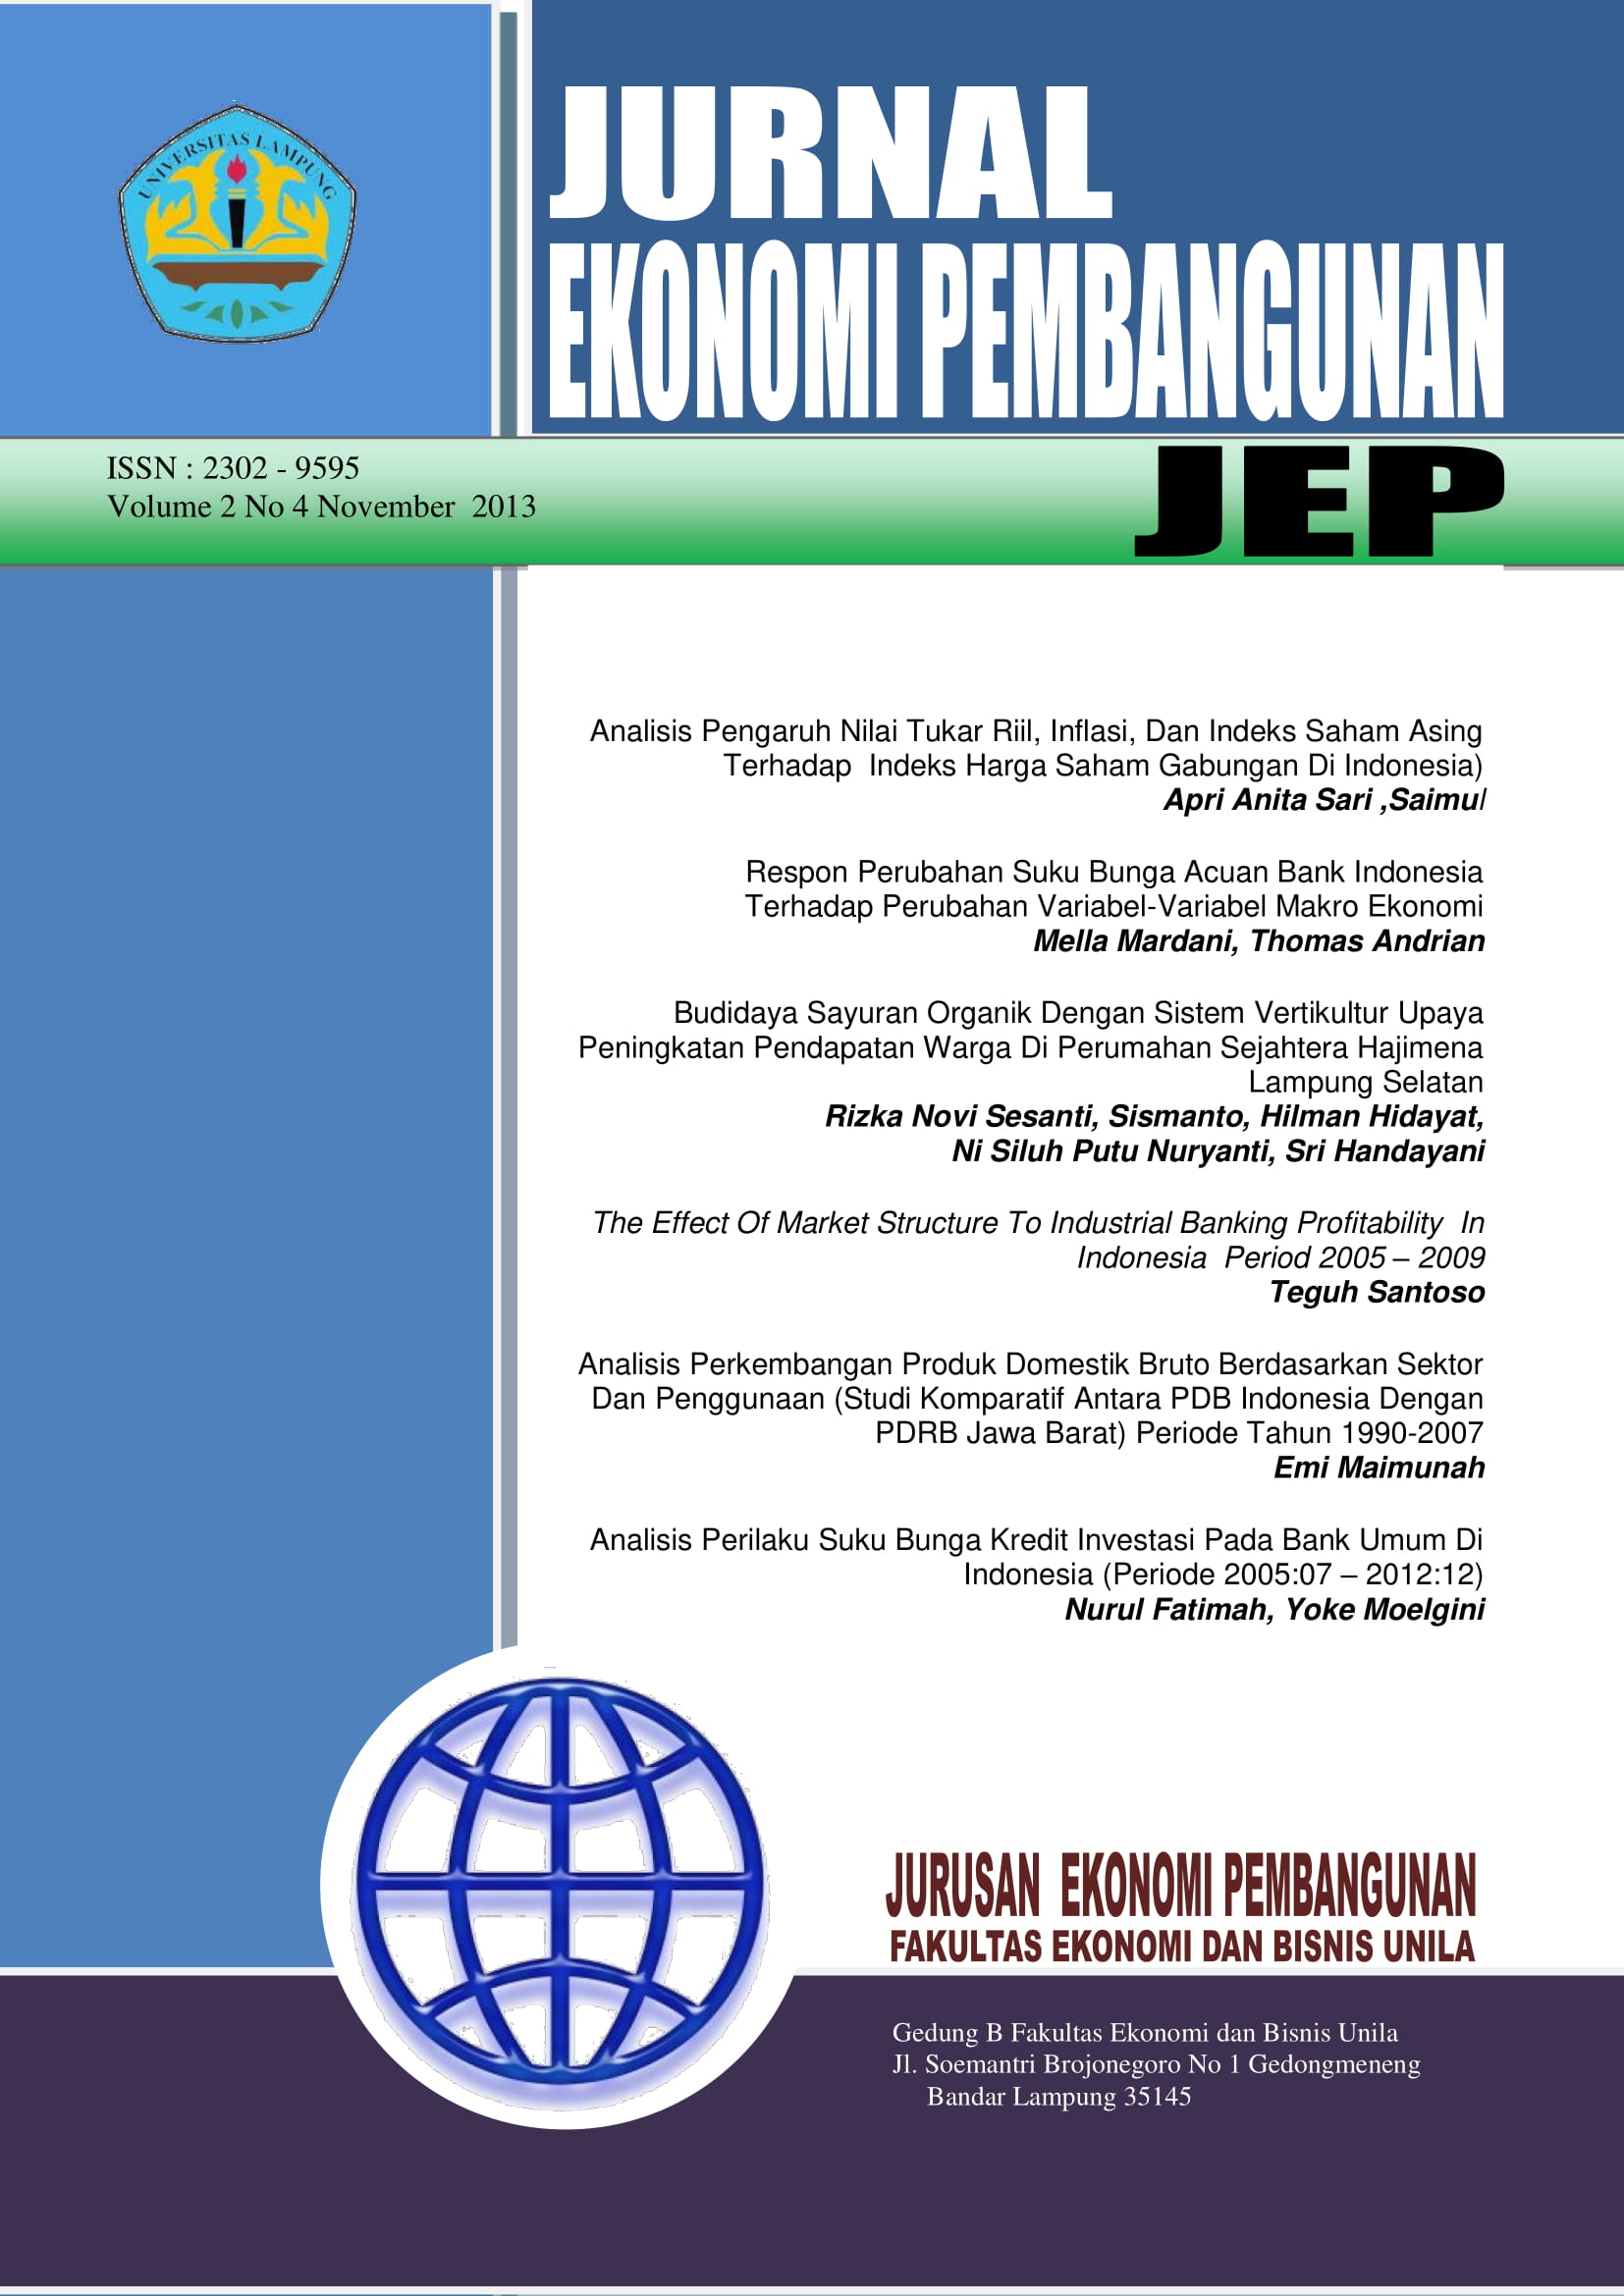 Jurnal Ekonomi Pembangunan Jep Faculty Of Economics And Business The University Of Lampung